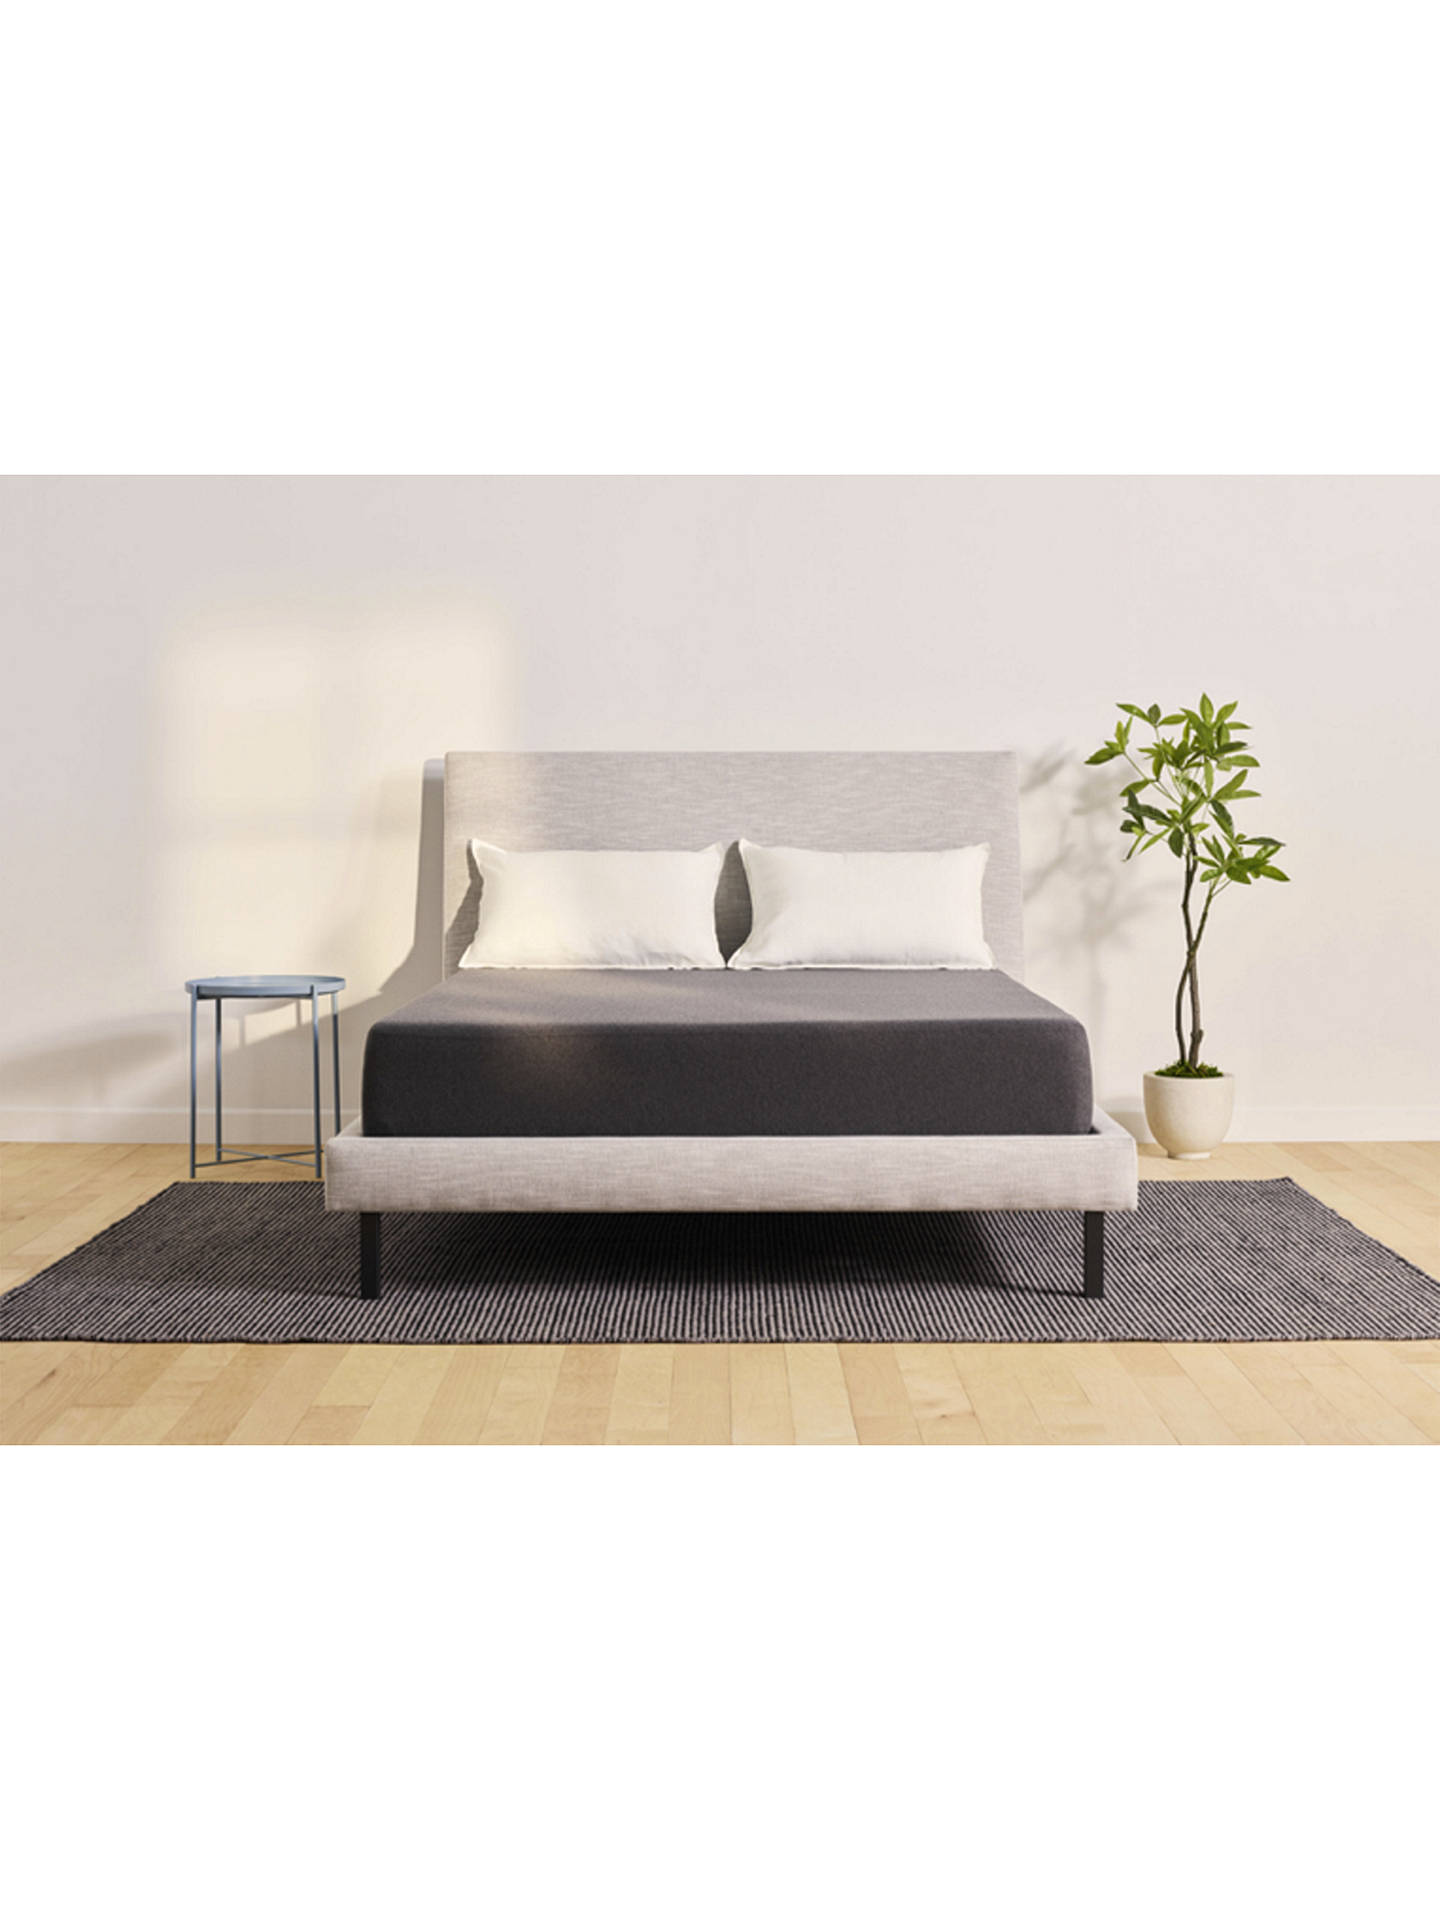 Buy Casper Hybrid Pocket Spring Mattress, Medium Tension, Single Online at johnlewis.com